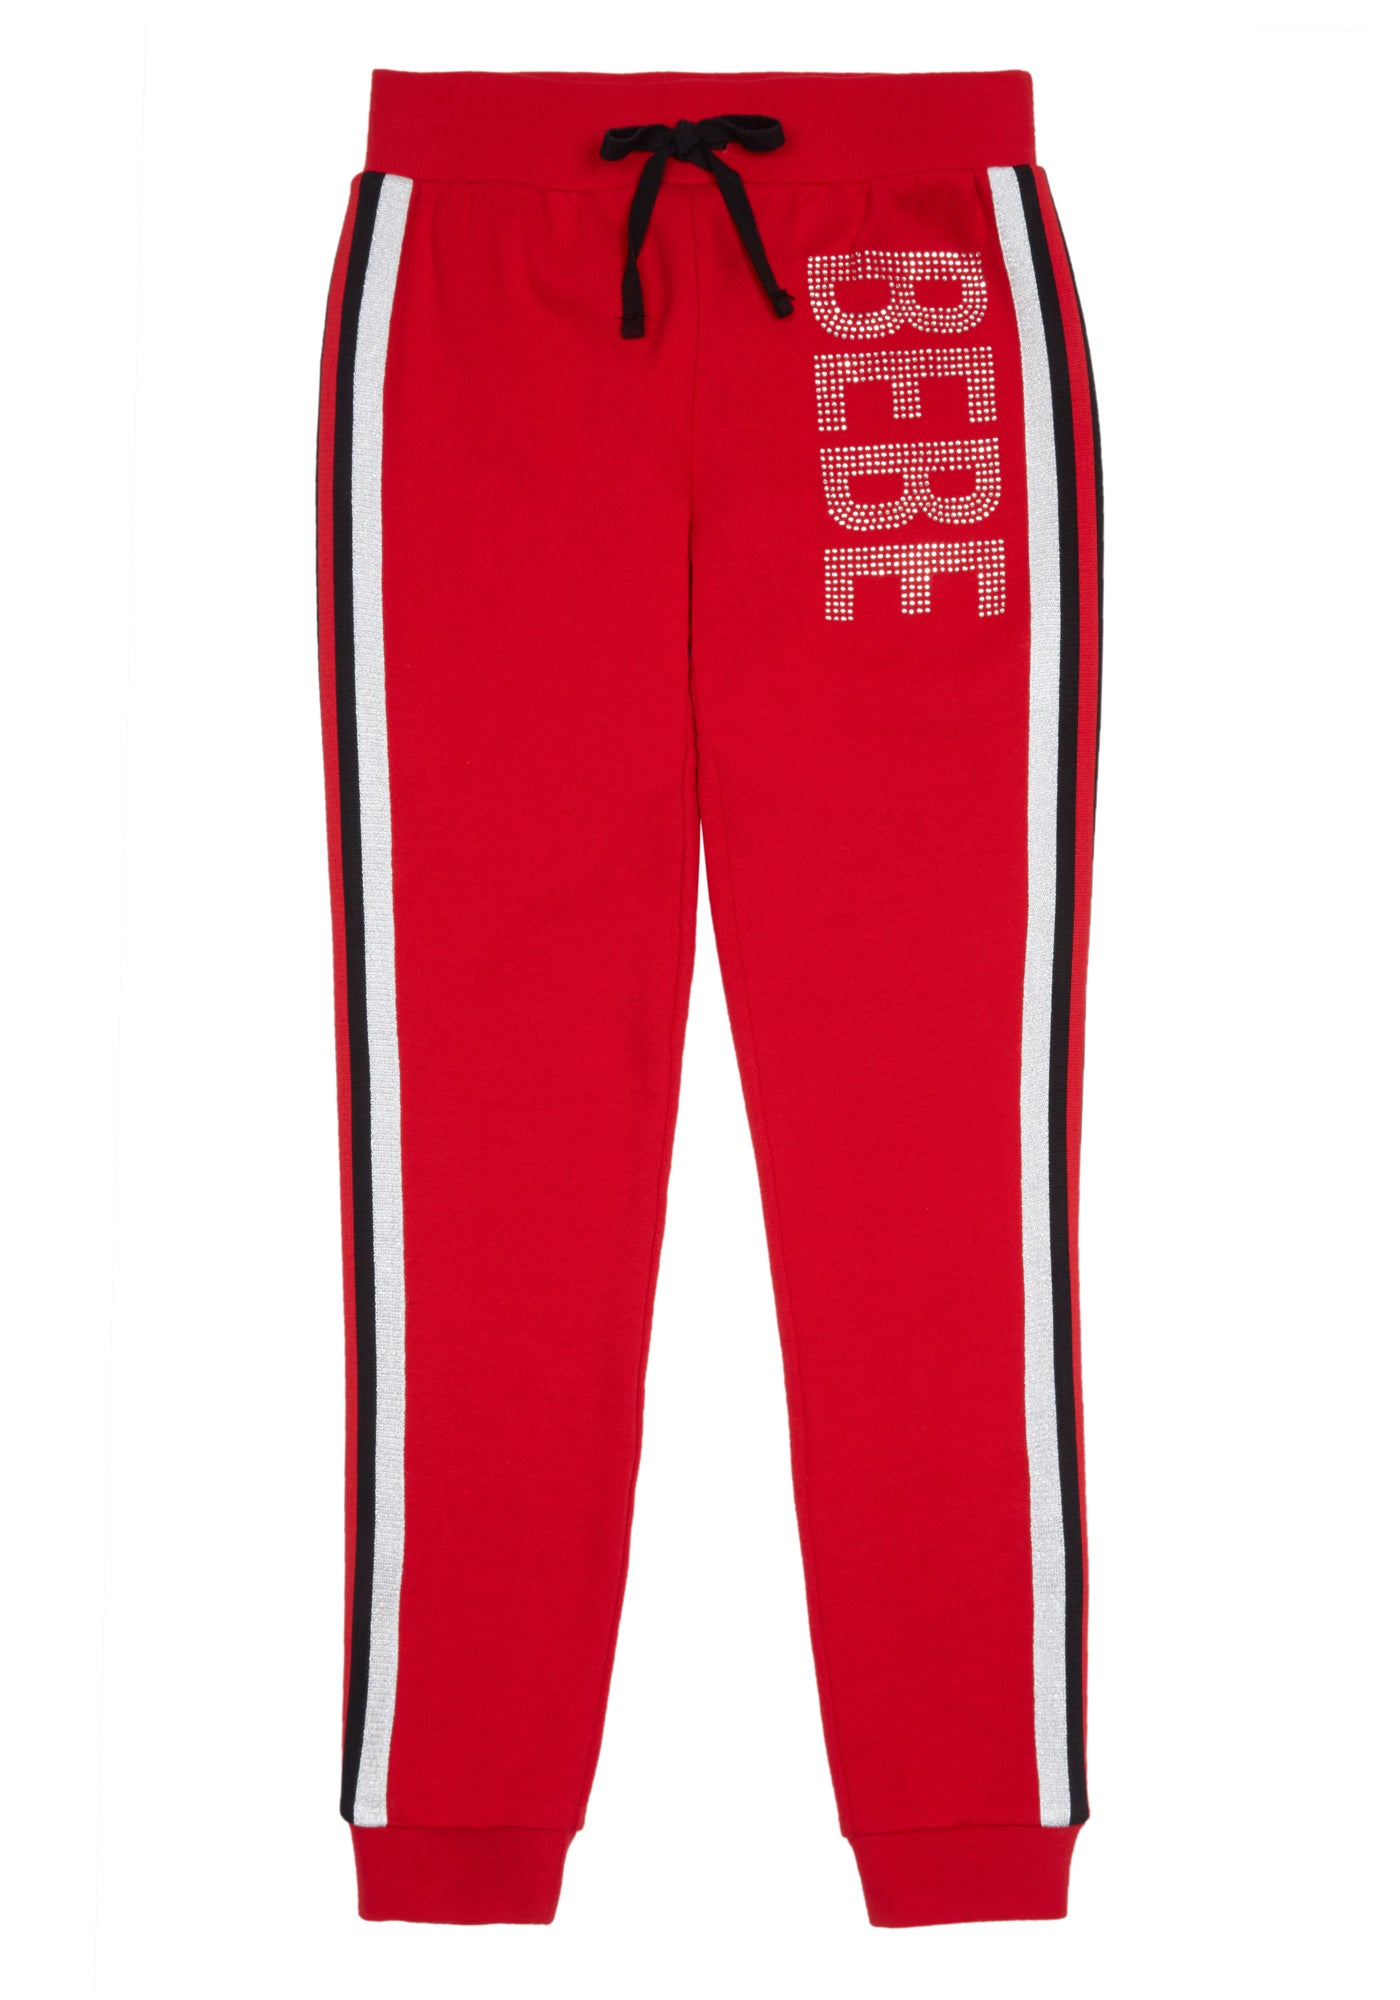 Bebe Women's Girls Sparkly Logo Fleece Pant, Size S(7-8) in Red Cotton